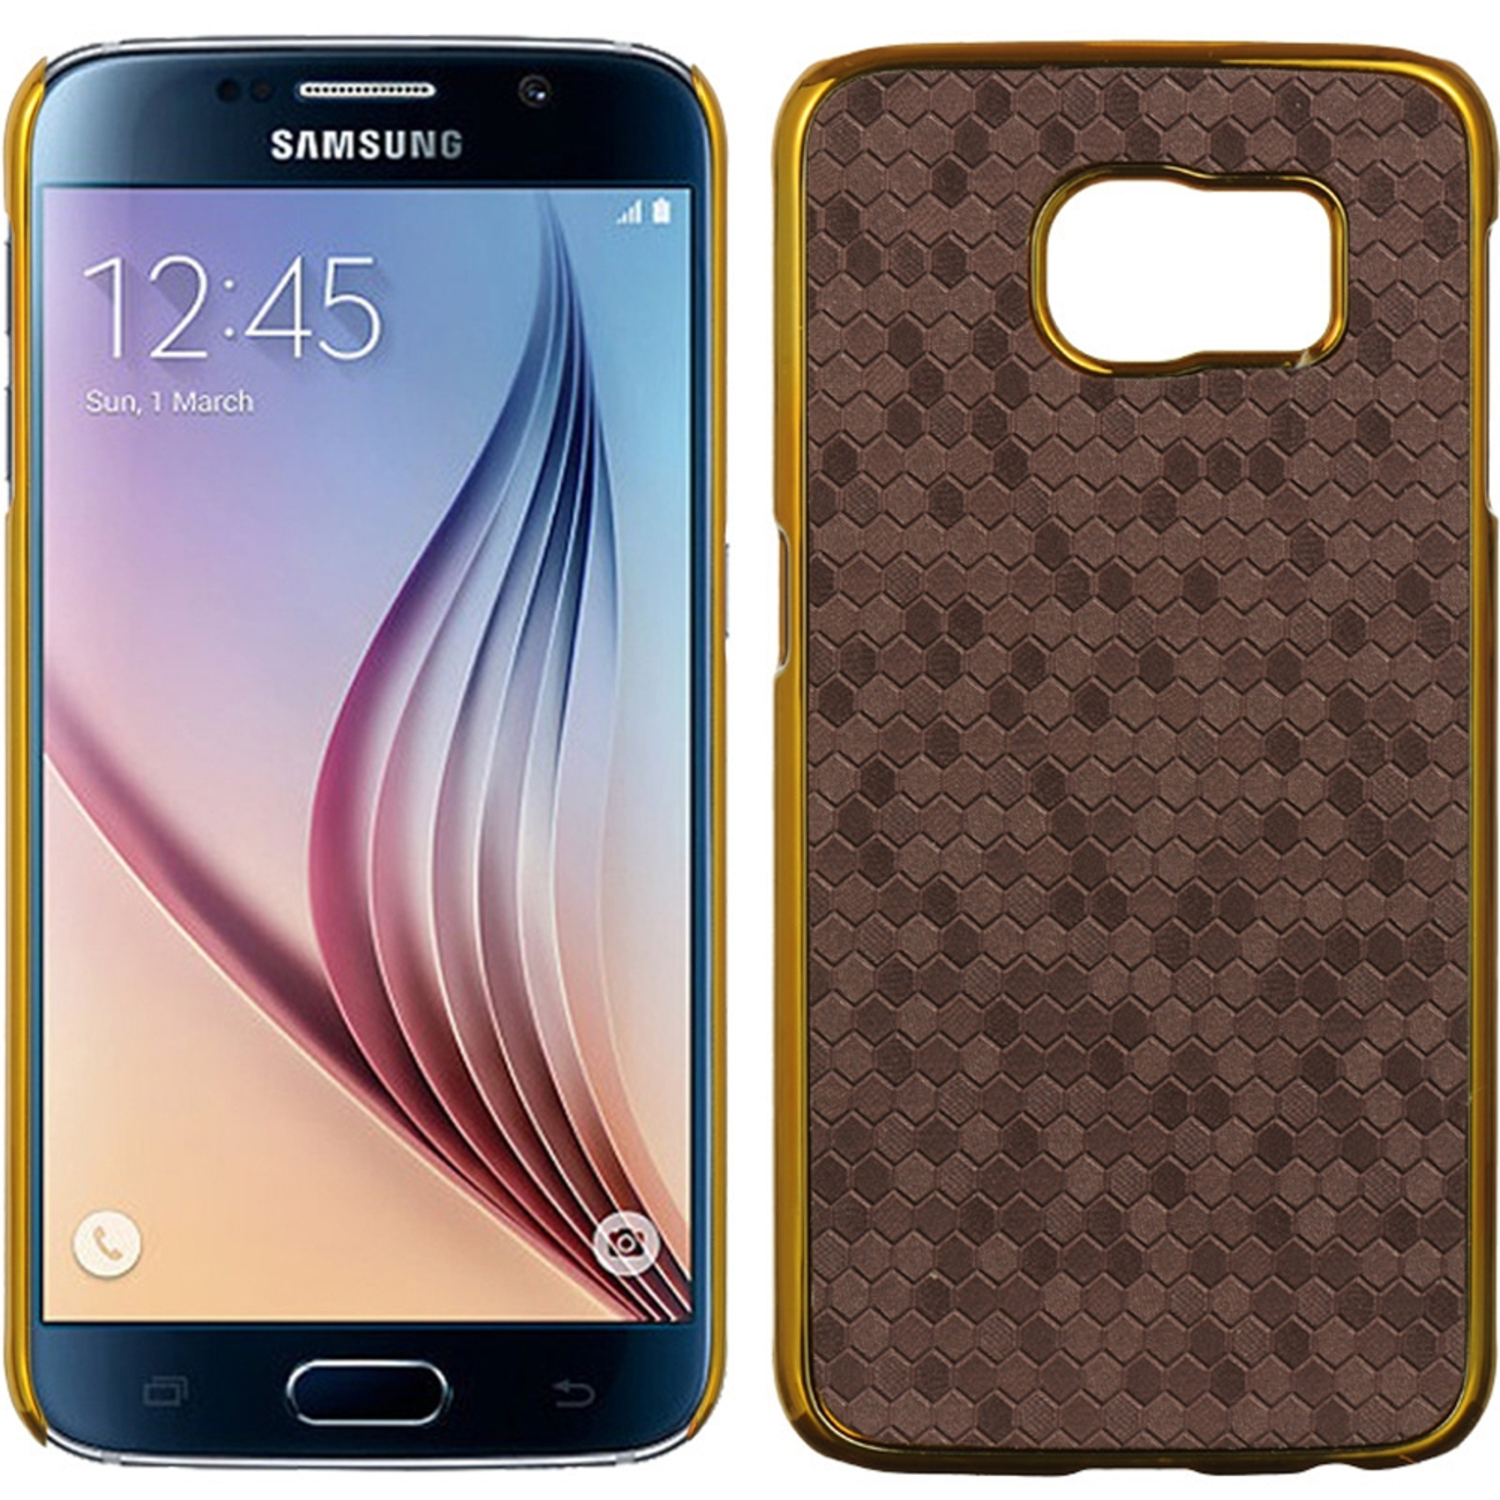 Samsung Galaxy S6 Case, by Insten Honeycomb Rubber Coated Hard Snap-in Case Cover For Samsung Galaxy S6 SM-G920